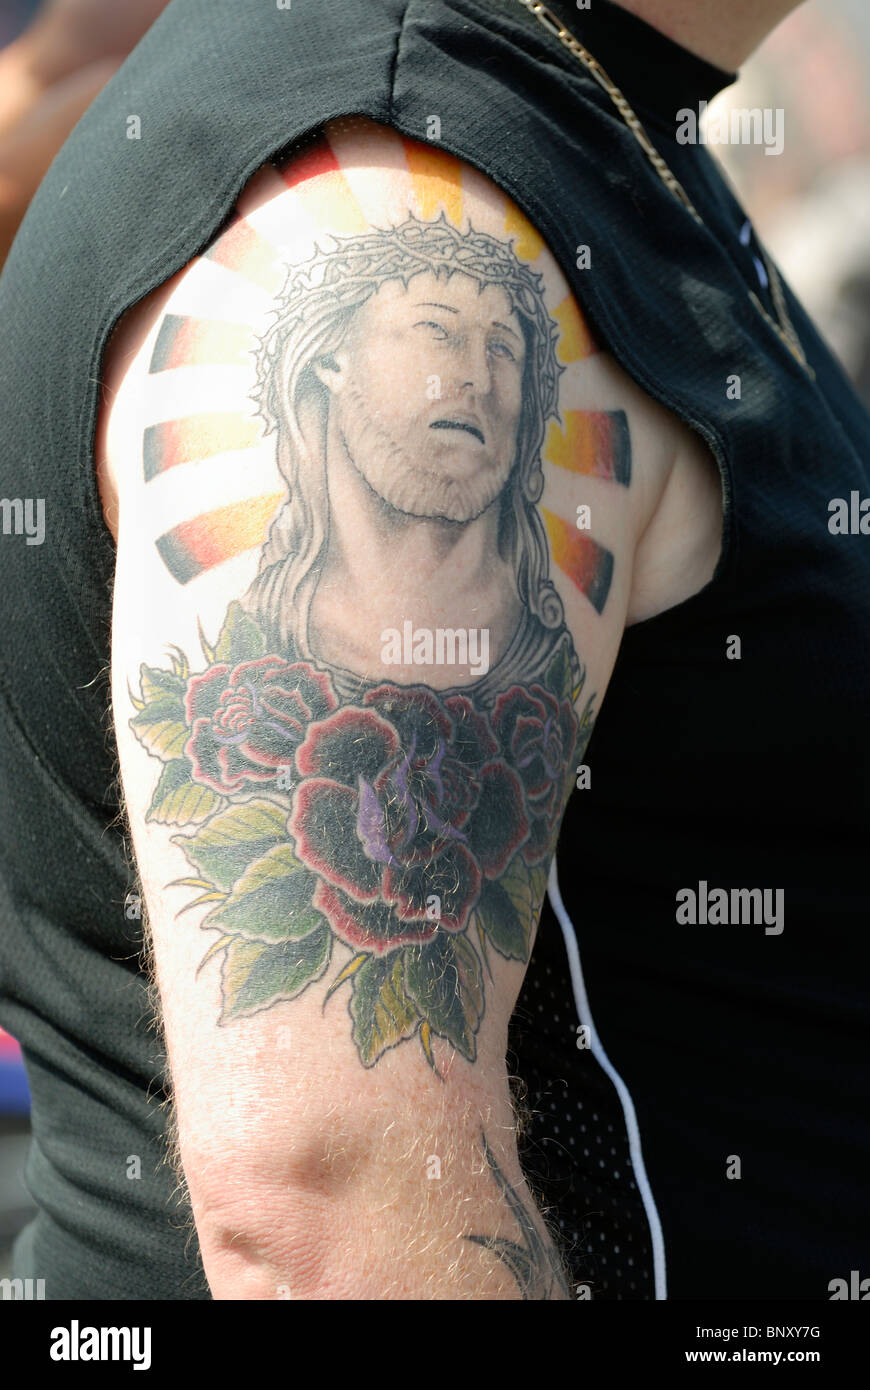 Jesus Tattoo Stock Photos & Jesus Tattoo Stock Images - Alamy